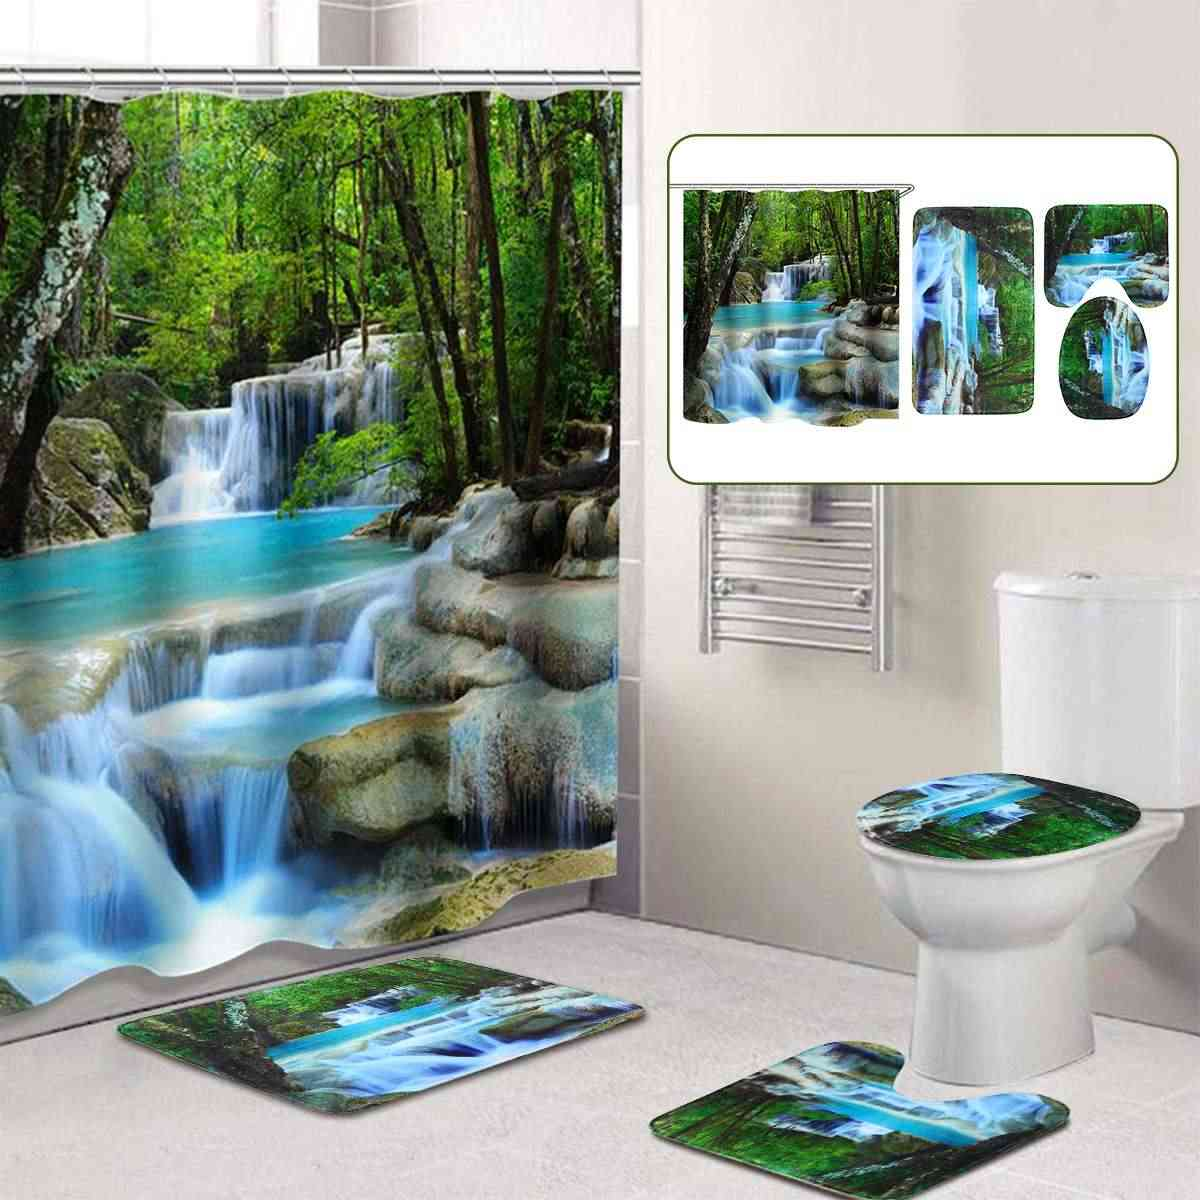 3D Waterfall Scenery Waterproof Shower Curtain Bathroom  Landscape Trees Flower Bath Mat Set Pedestal Rug Lid Toilet Cover